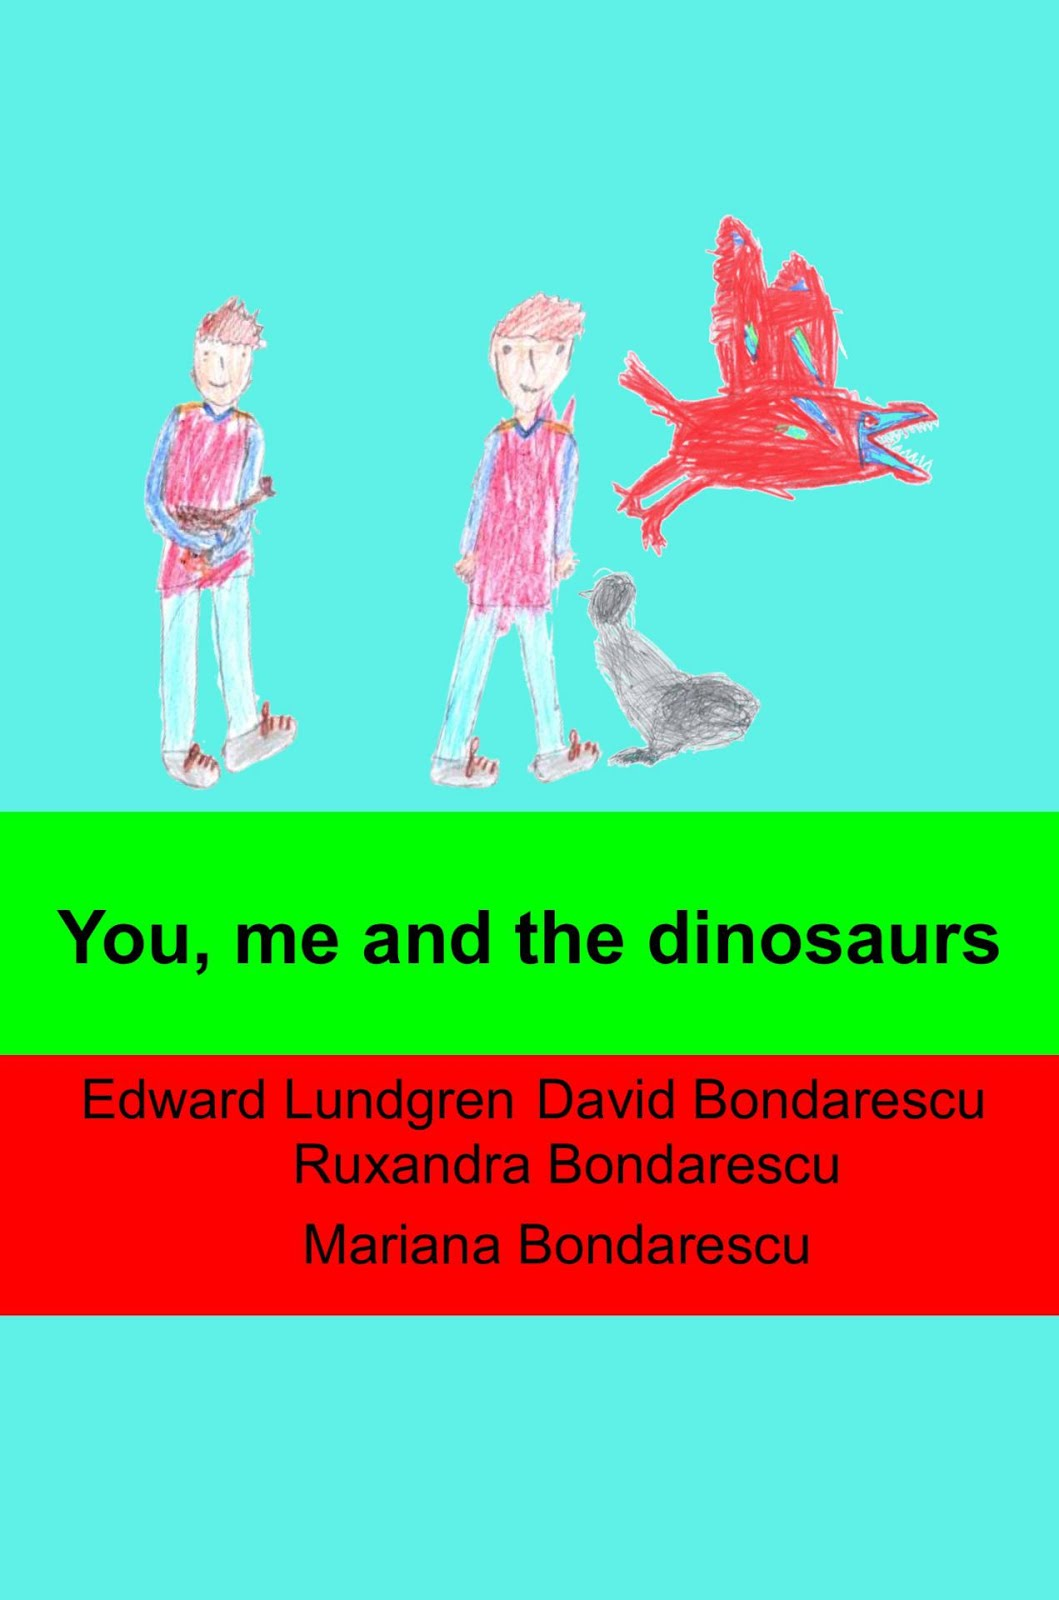 You, me and the dinosaurs